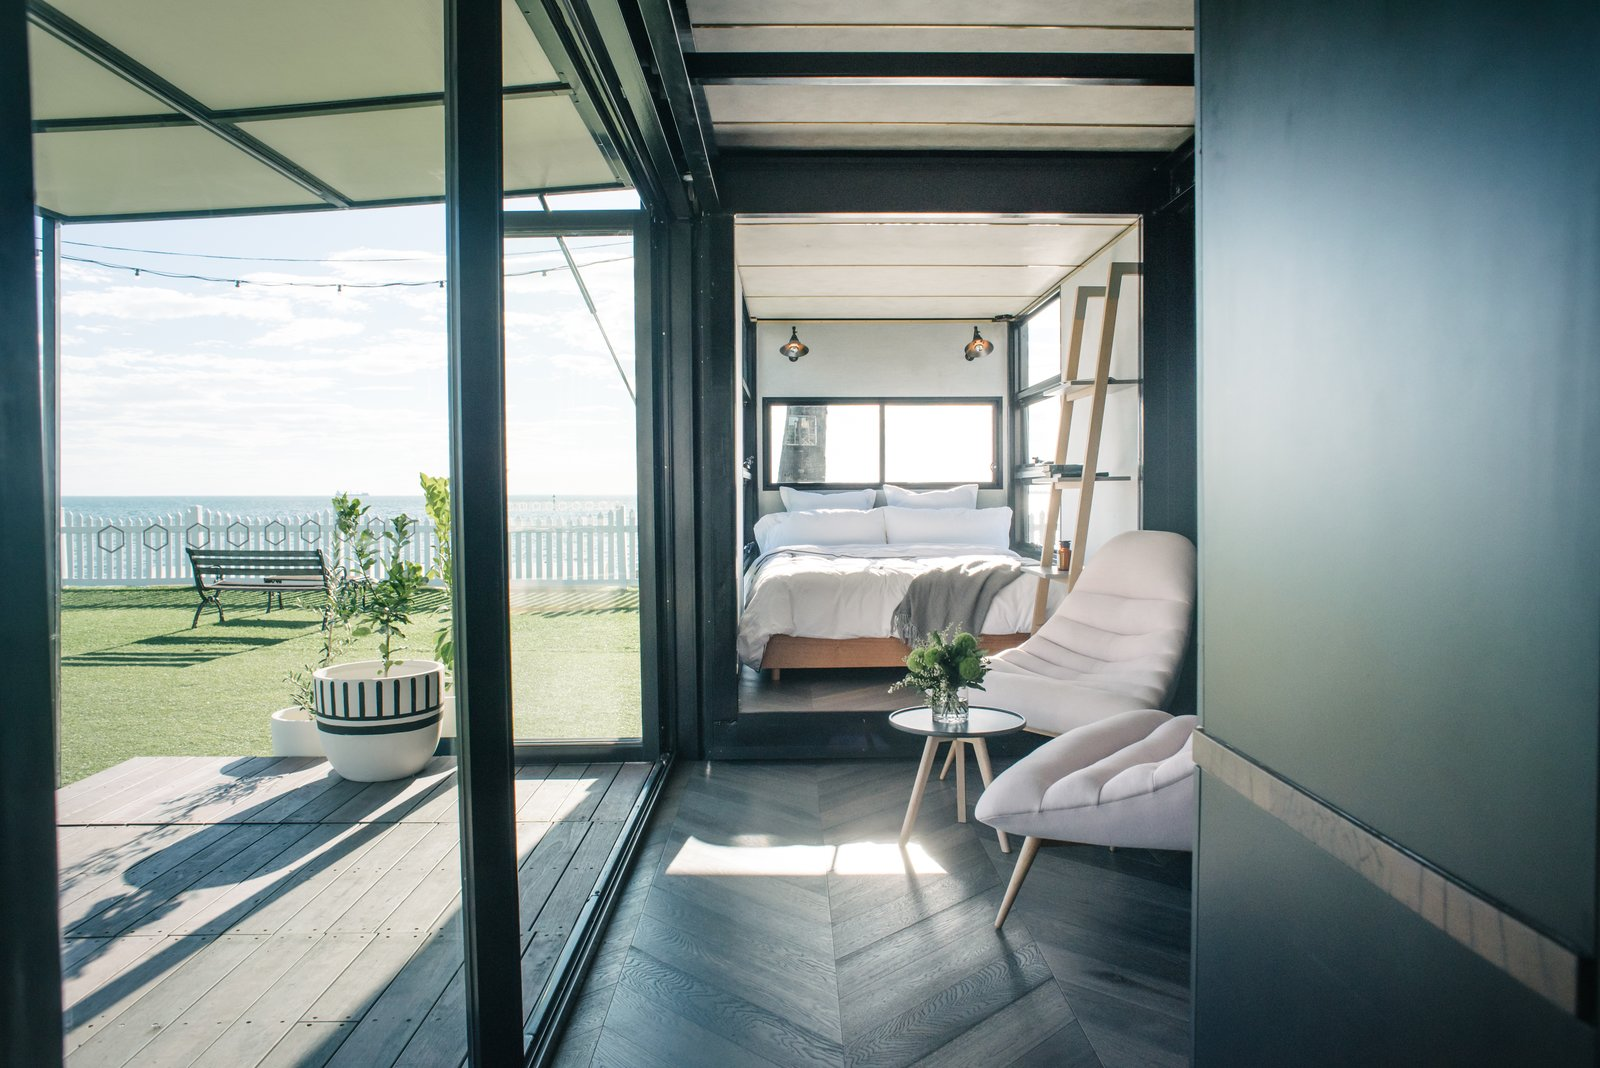 Photo 2 of 9 in An Australian Firm Makes Portable Hotel Rooms Out of Shipping Containers